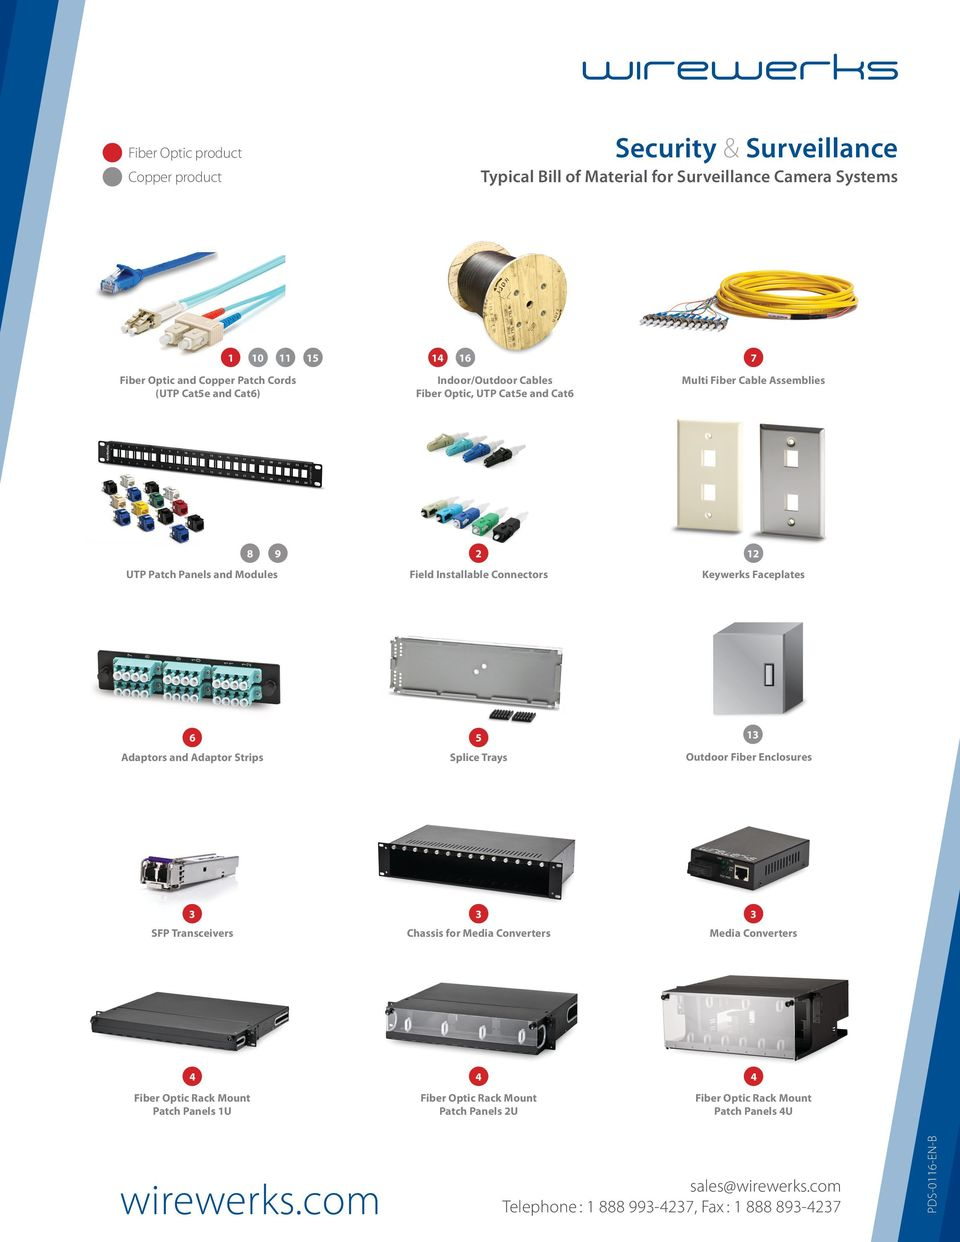 Faceplates 1 Adaptors and Adaptor Strips Splice Trays s and Modules Outdoor Fiber Enclosures SFP Transceivers Chassis for Media Converters Media